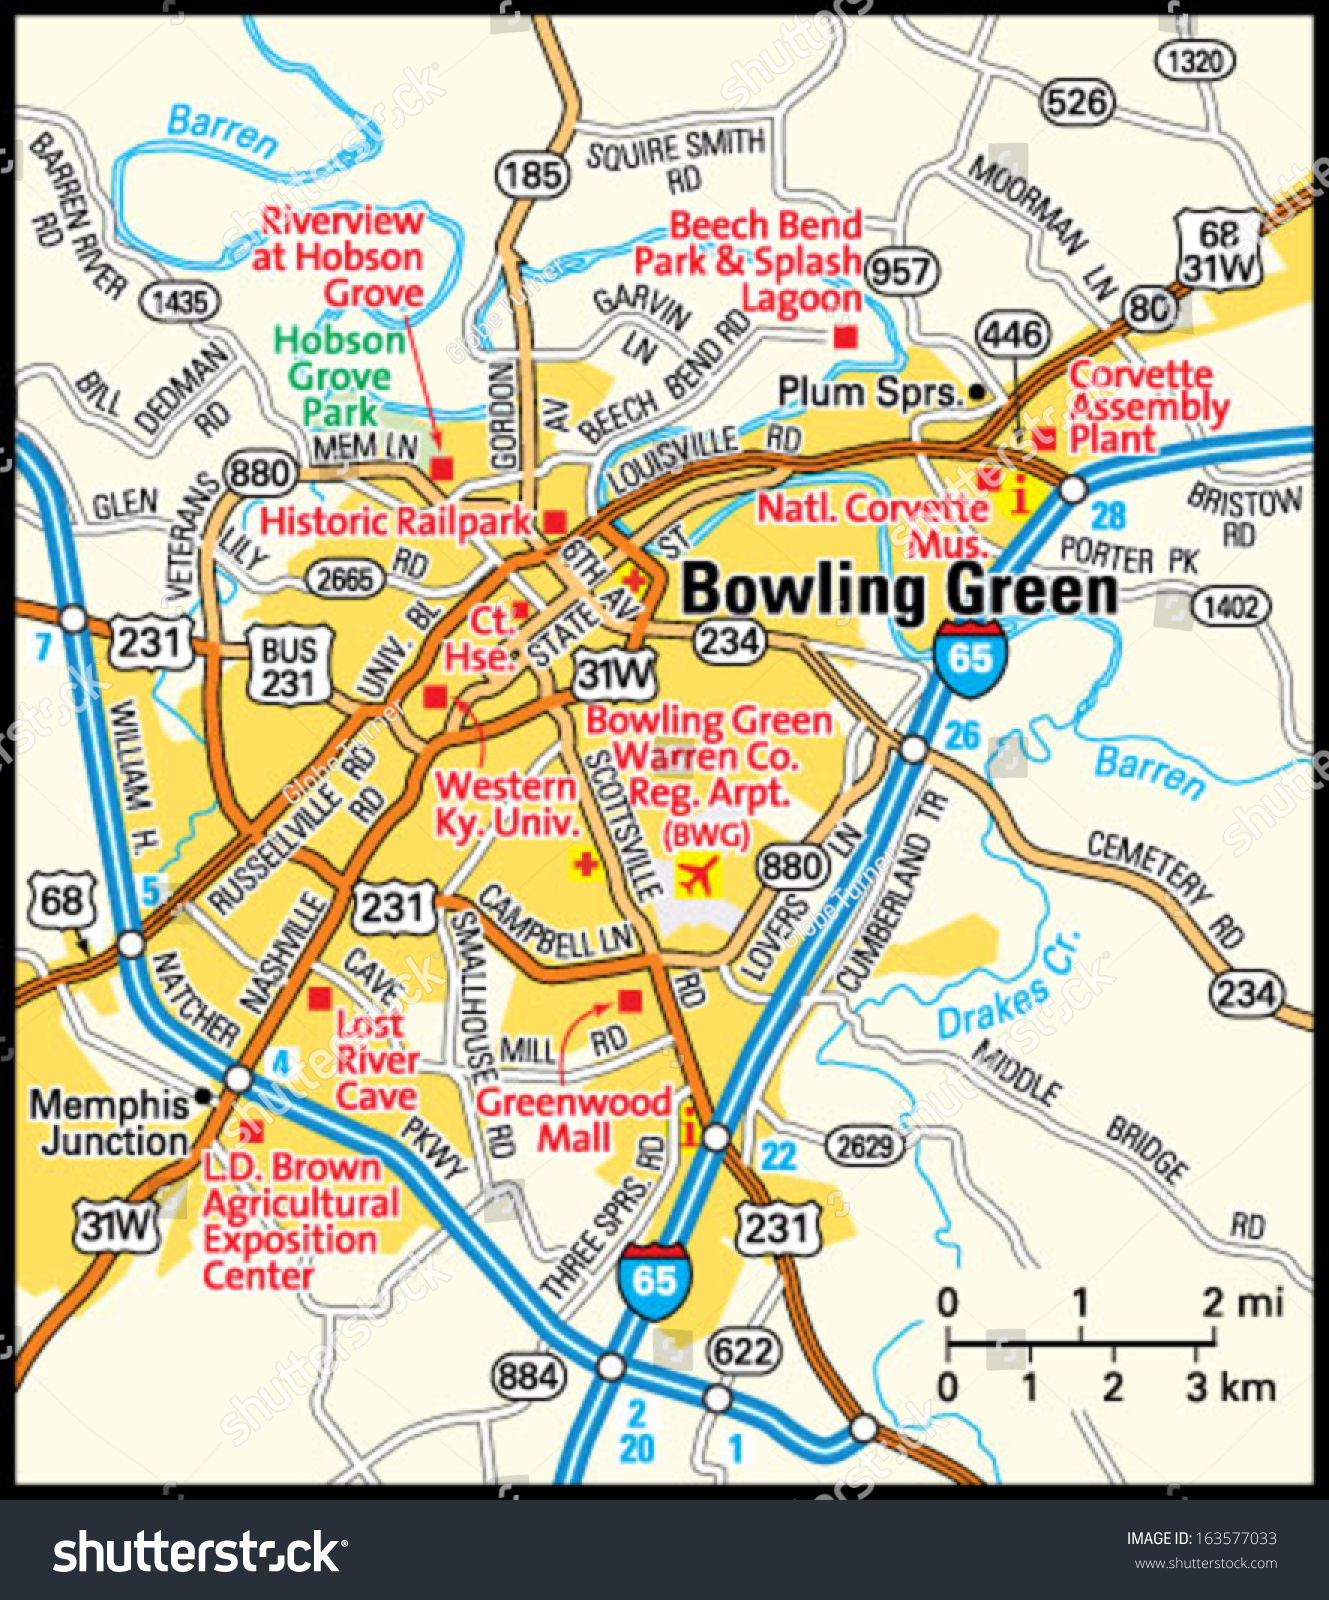 map of bowling green kentucky Bowling Green Kentucky Area Map Stock Vector Royalty Free 163577033 map of bowling green kentucky